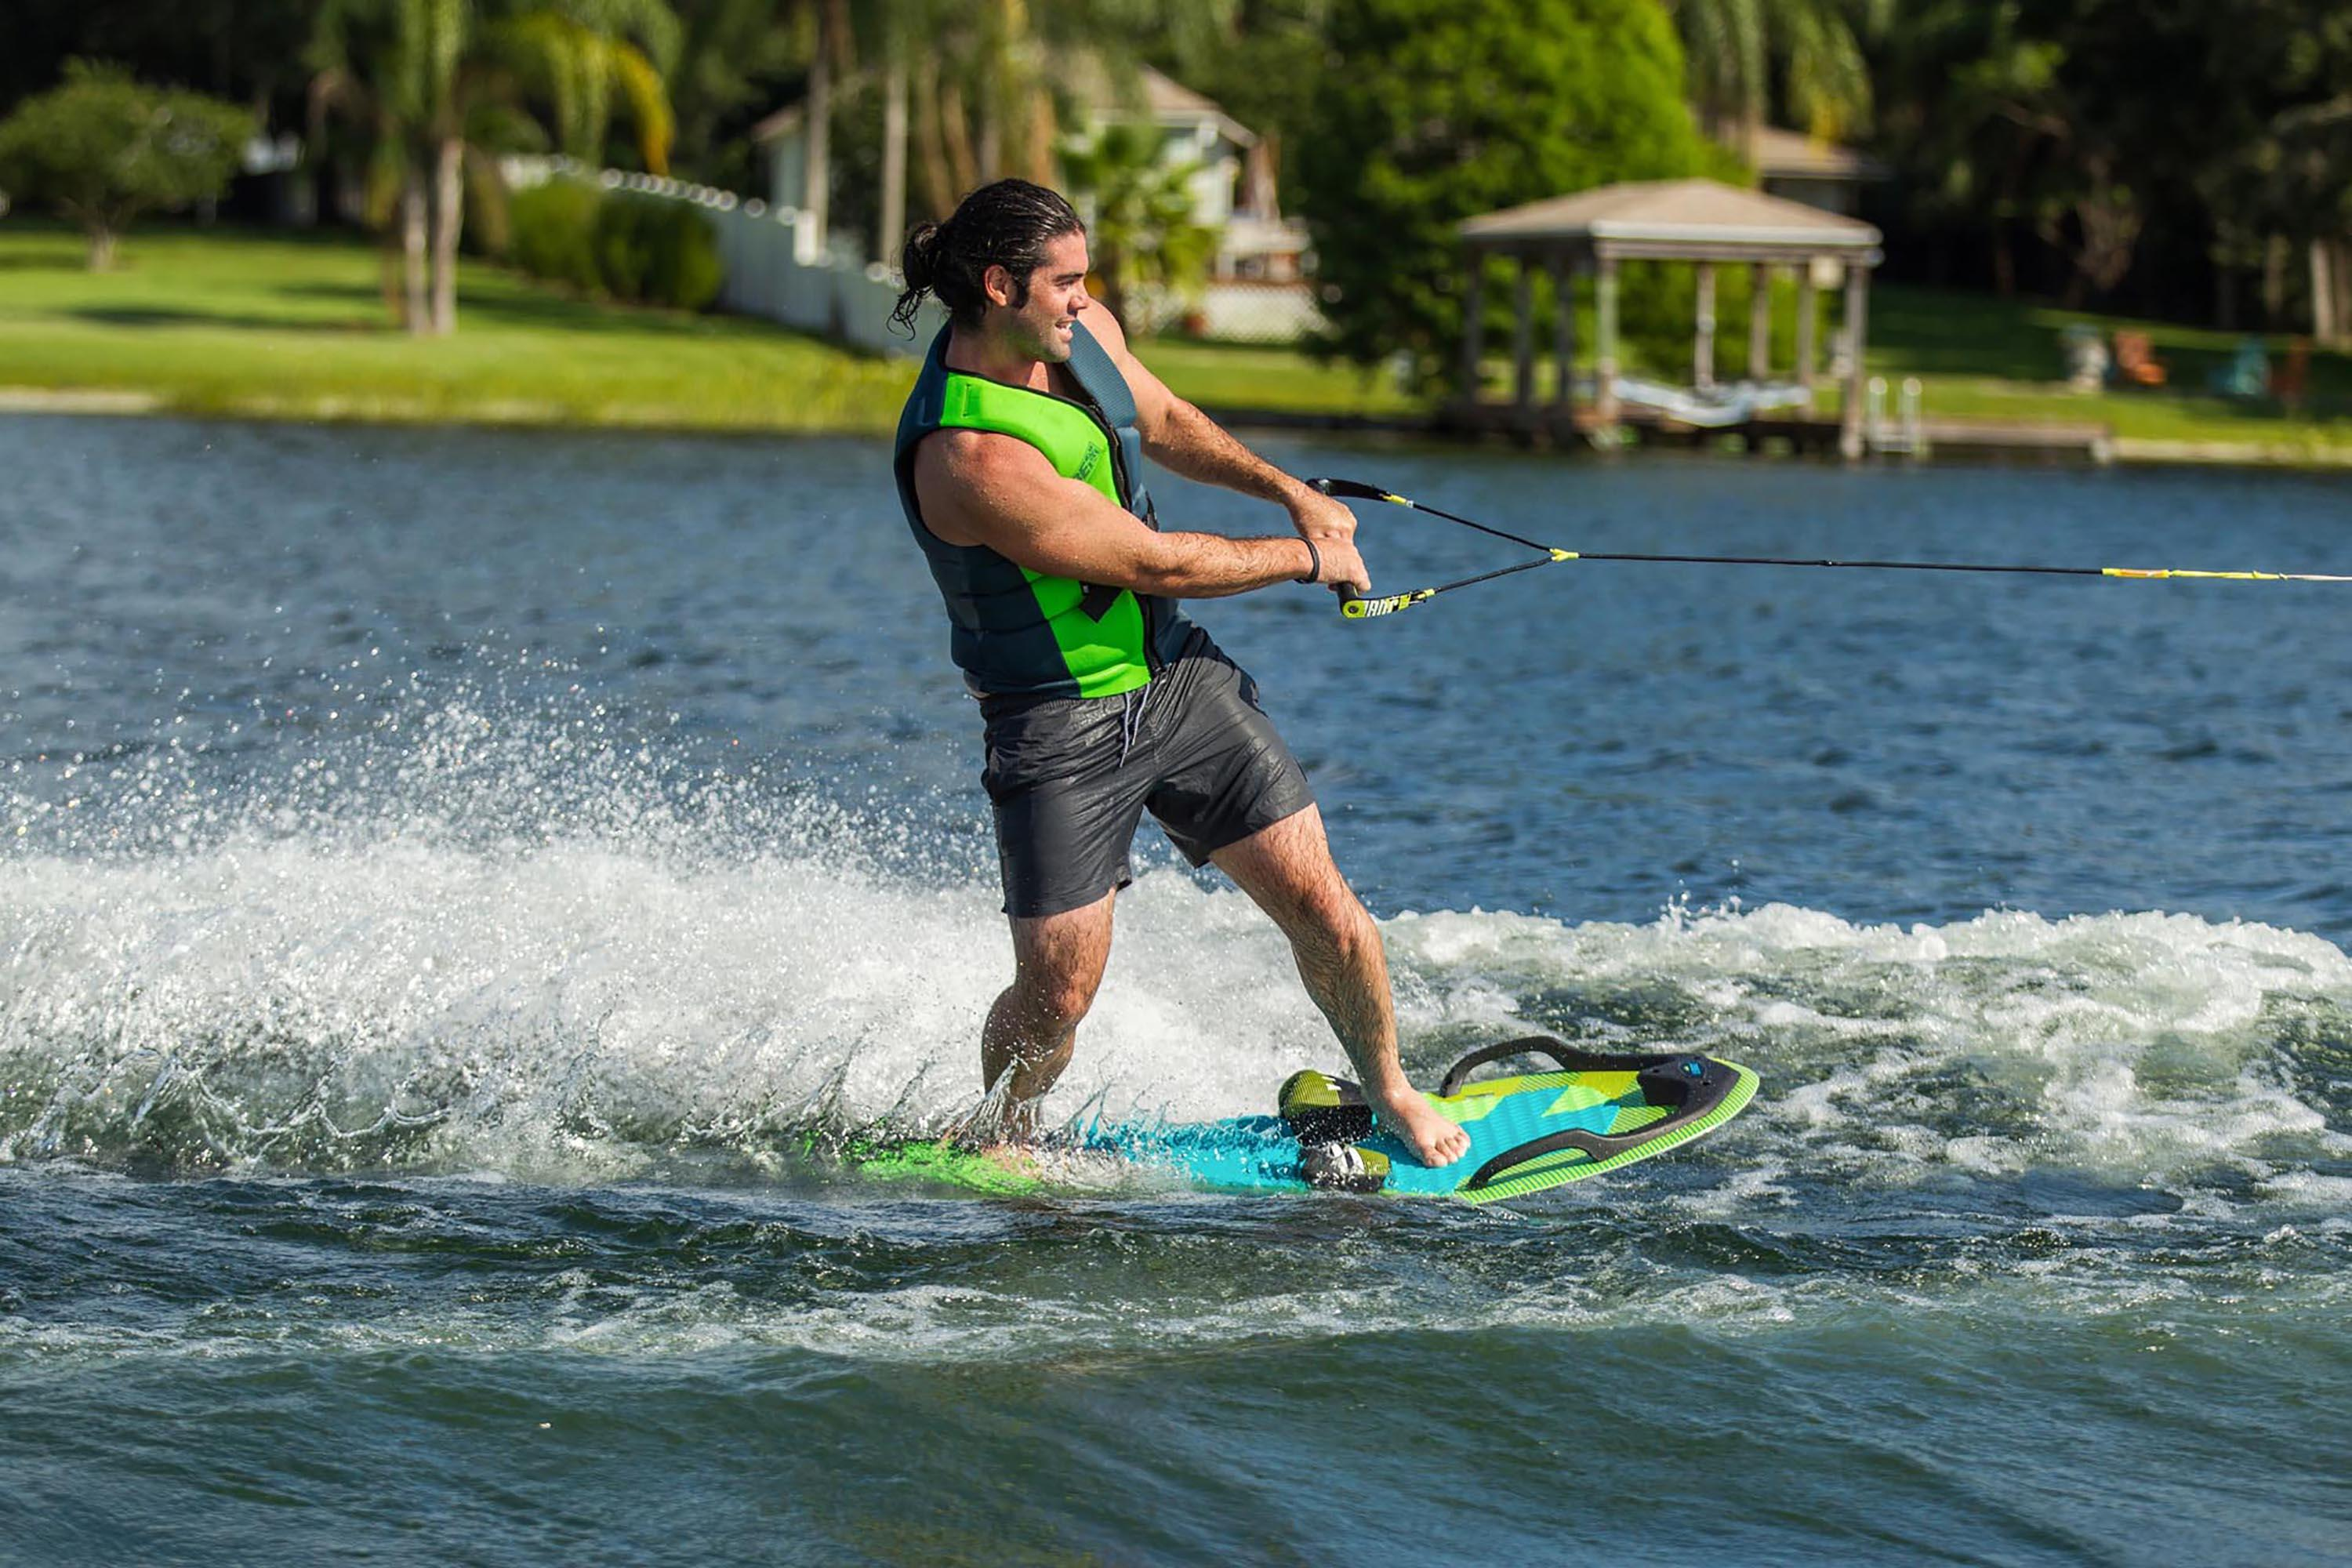 15 Wakeboarding Tips And Tricks To Get Started